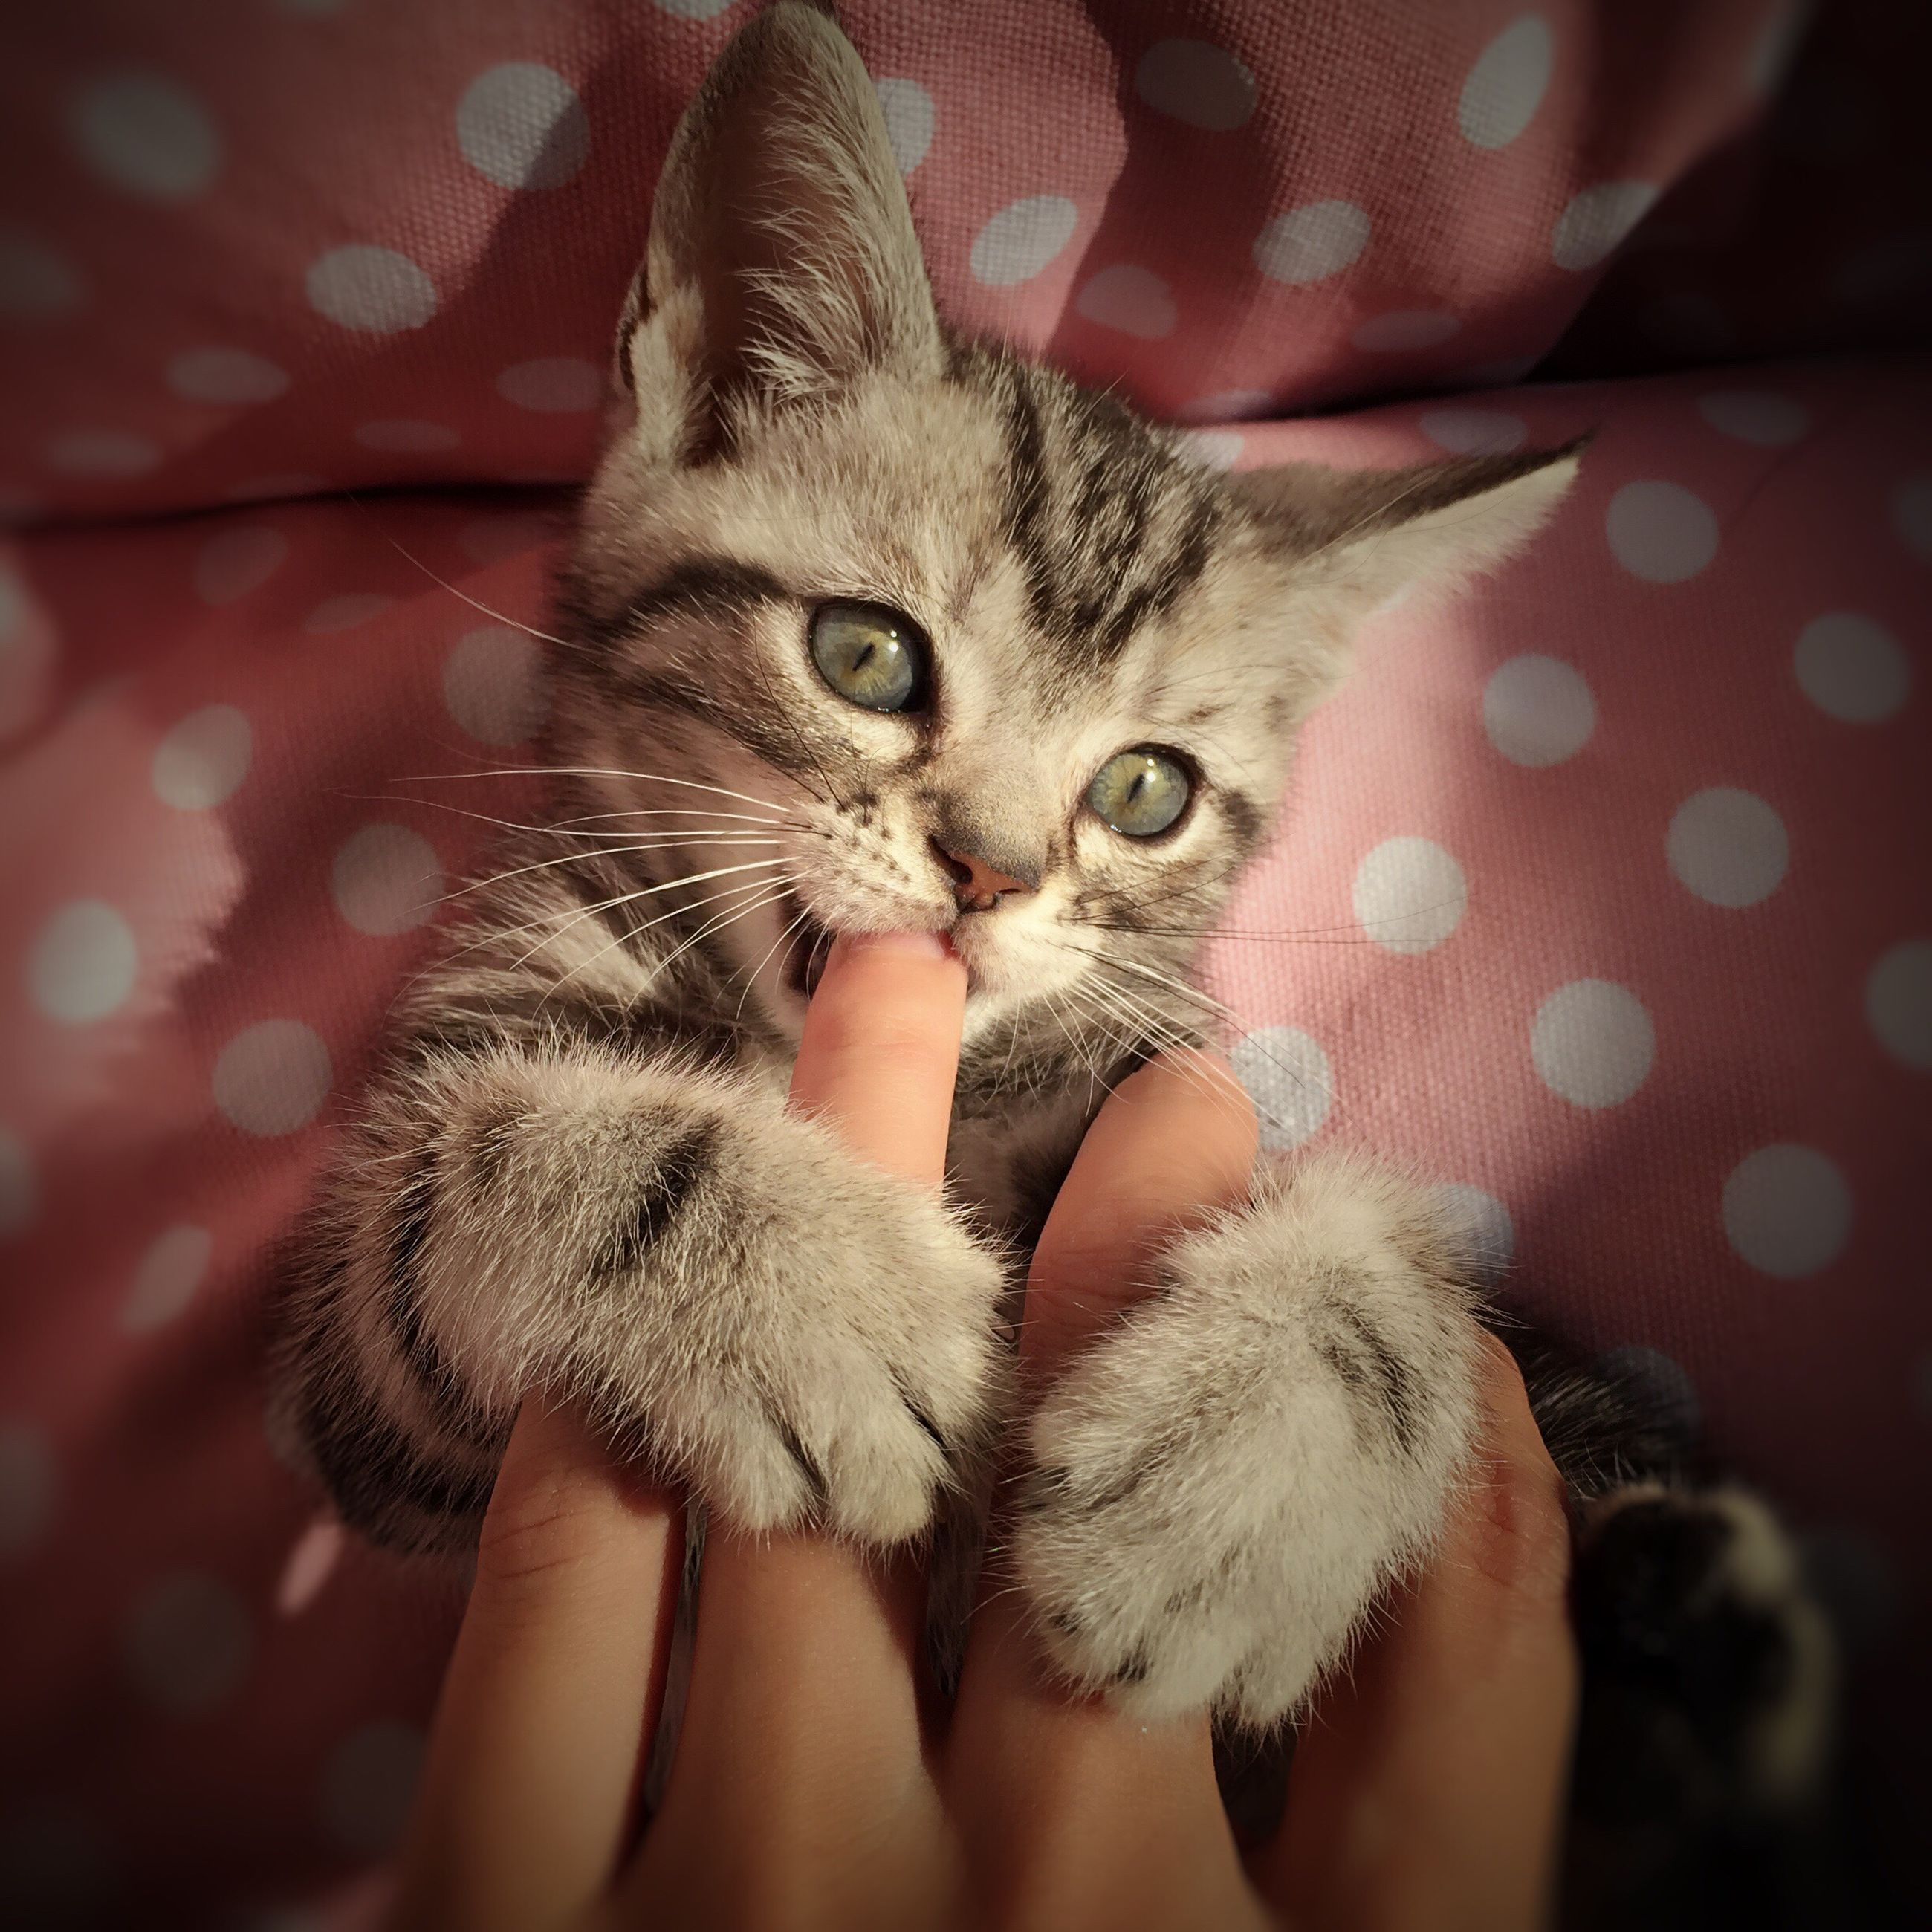 pets, domestic animals, animal themes, one animal, domestic cat, indoors, mammal, cat, person, feline, whisker, part of, young animal, pet owner, kitten, holding, close-up